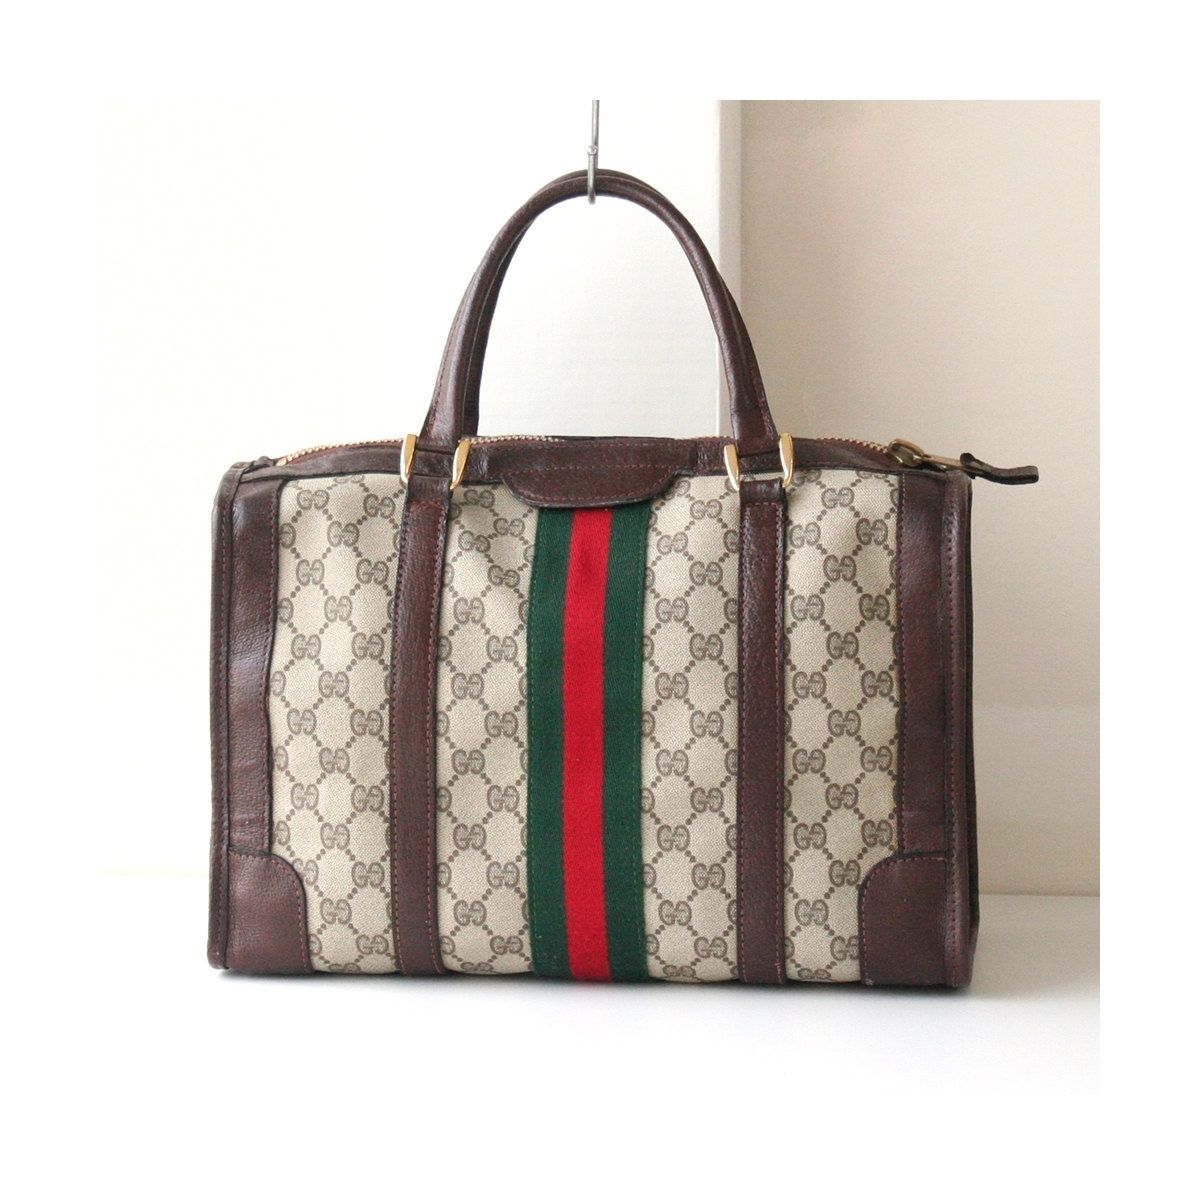 5d4d36dc118 Gucci monogram vintage boston bag authentic red green brown tote handbag  purse by hfvin on Etsy